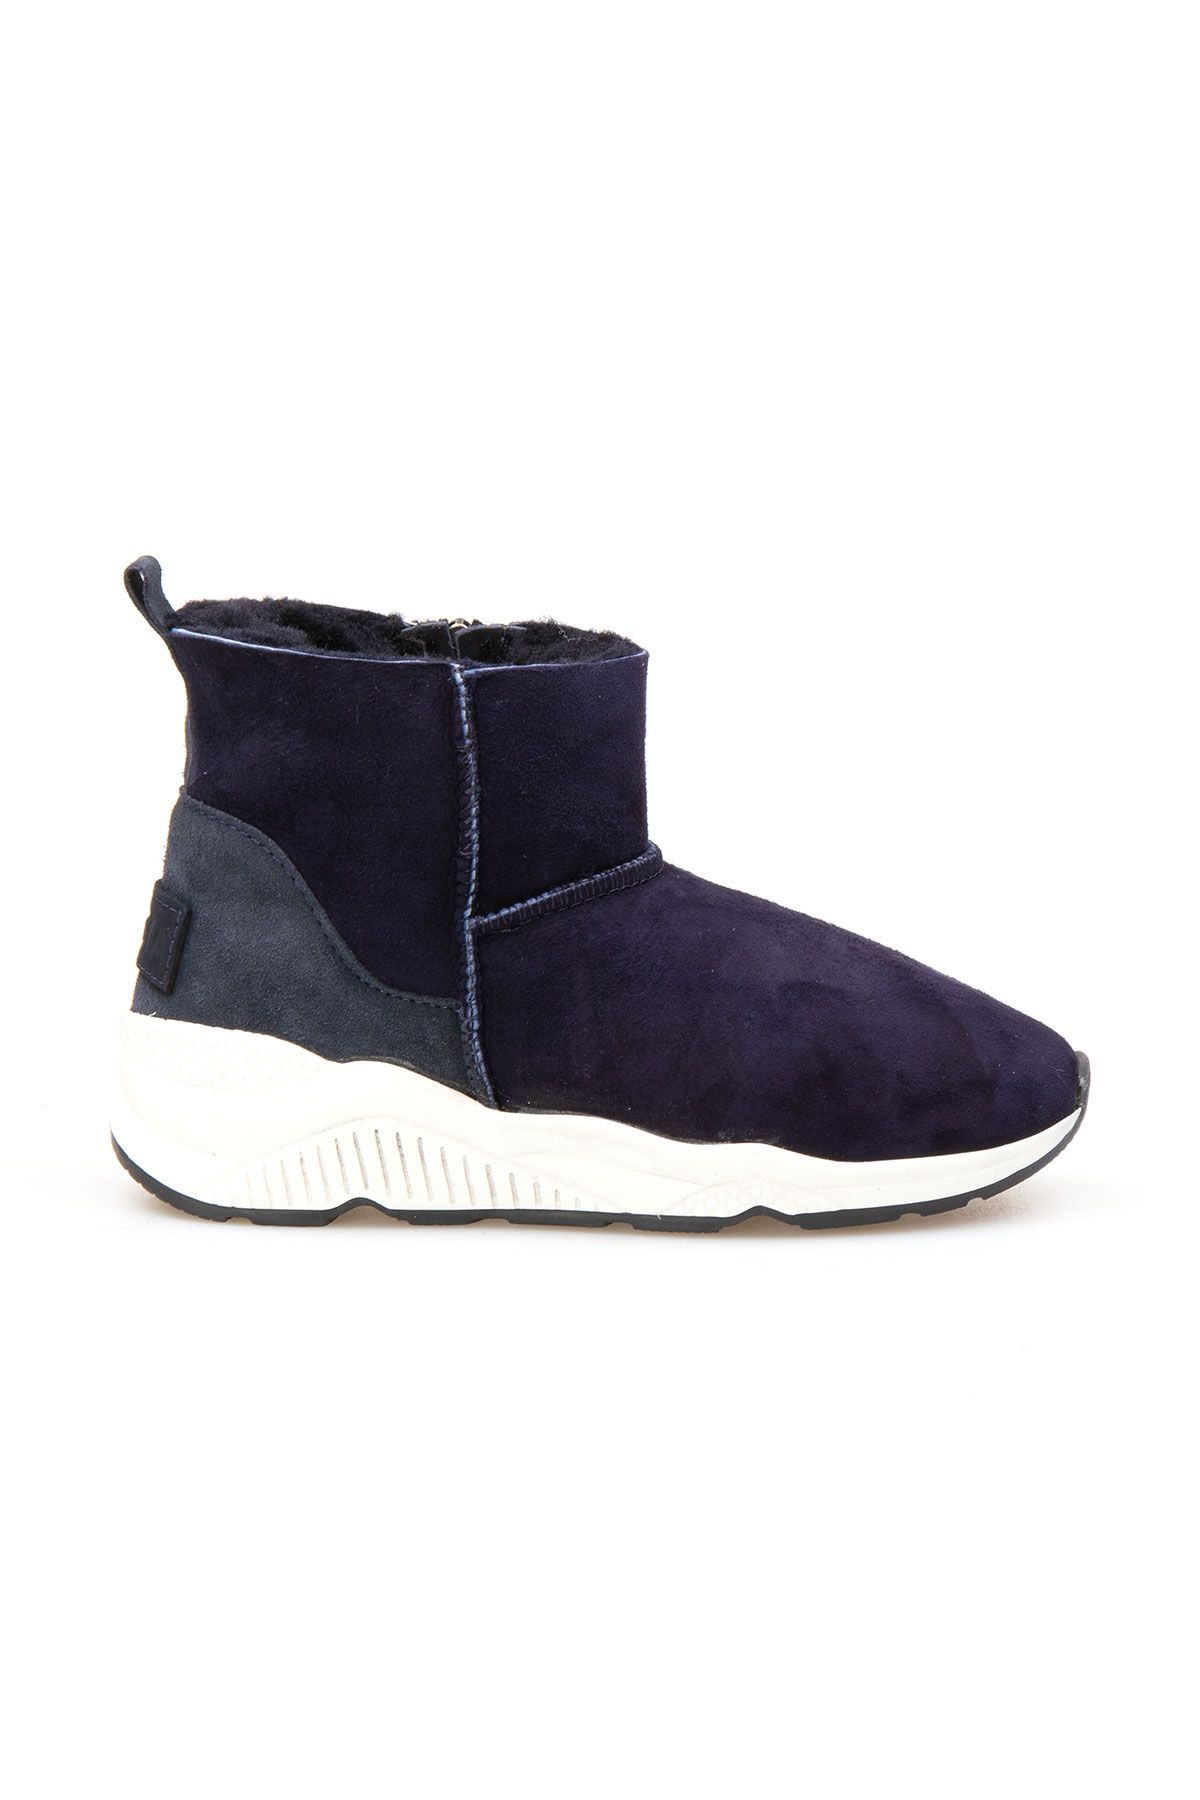 Pegia Genuine Shearling Zippered Women's Ankle Boots 191068 Navy blue